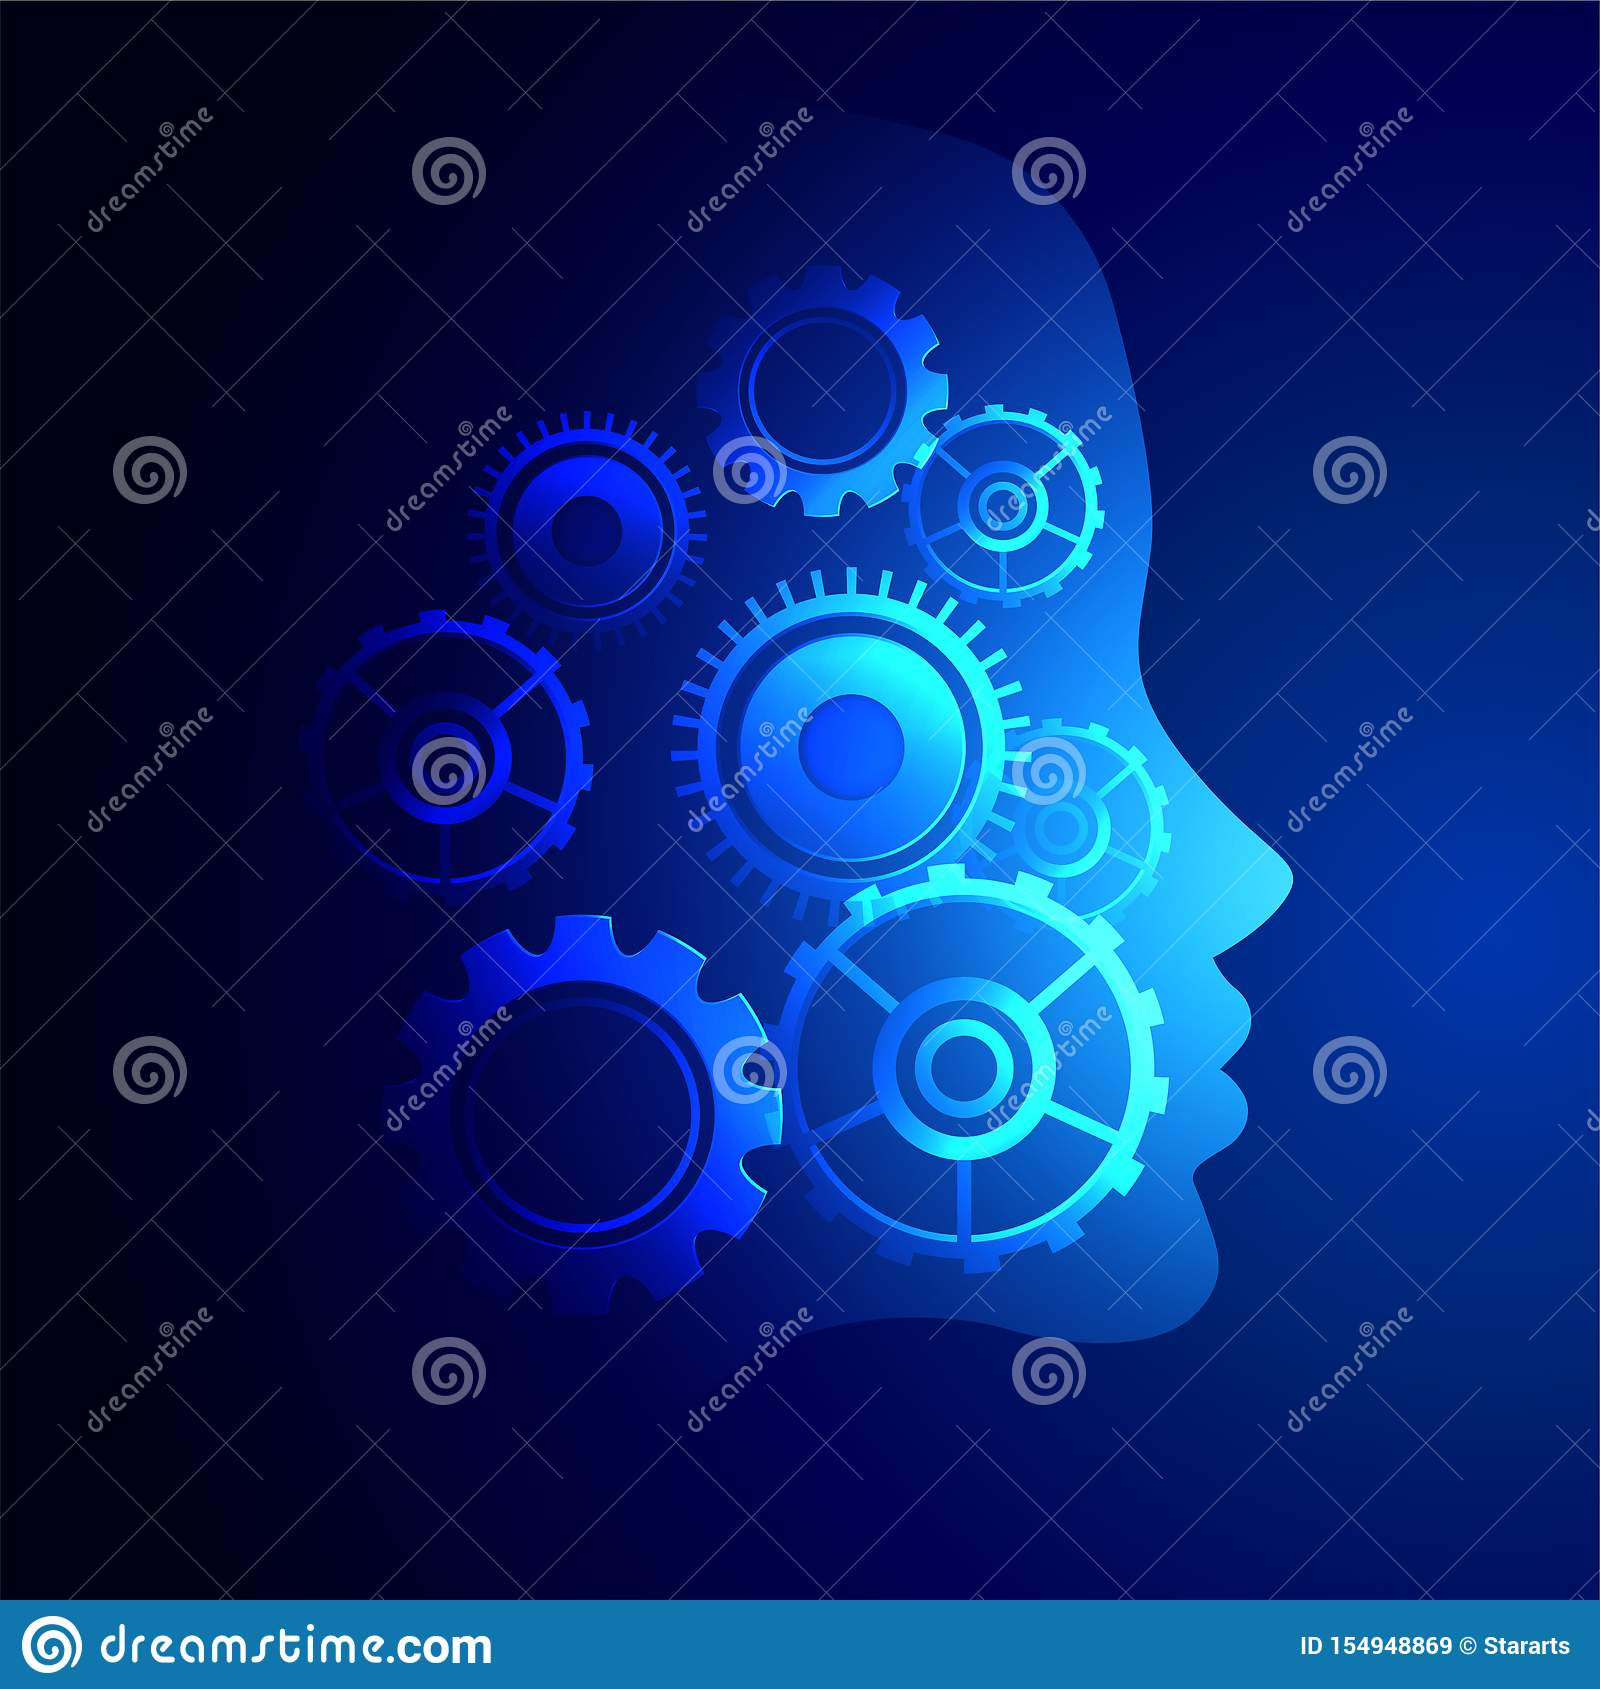 Digital Technology Face With Gears Symbols Background